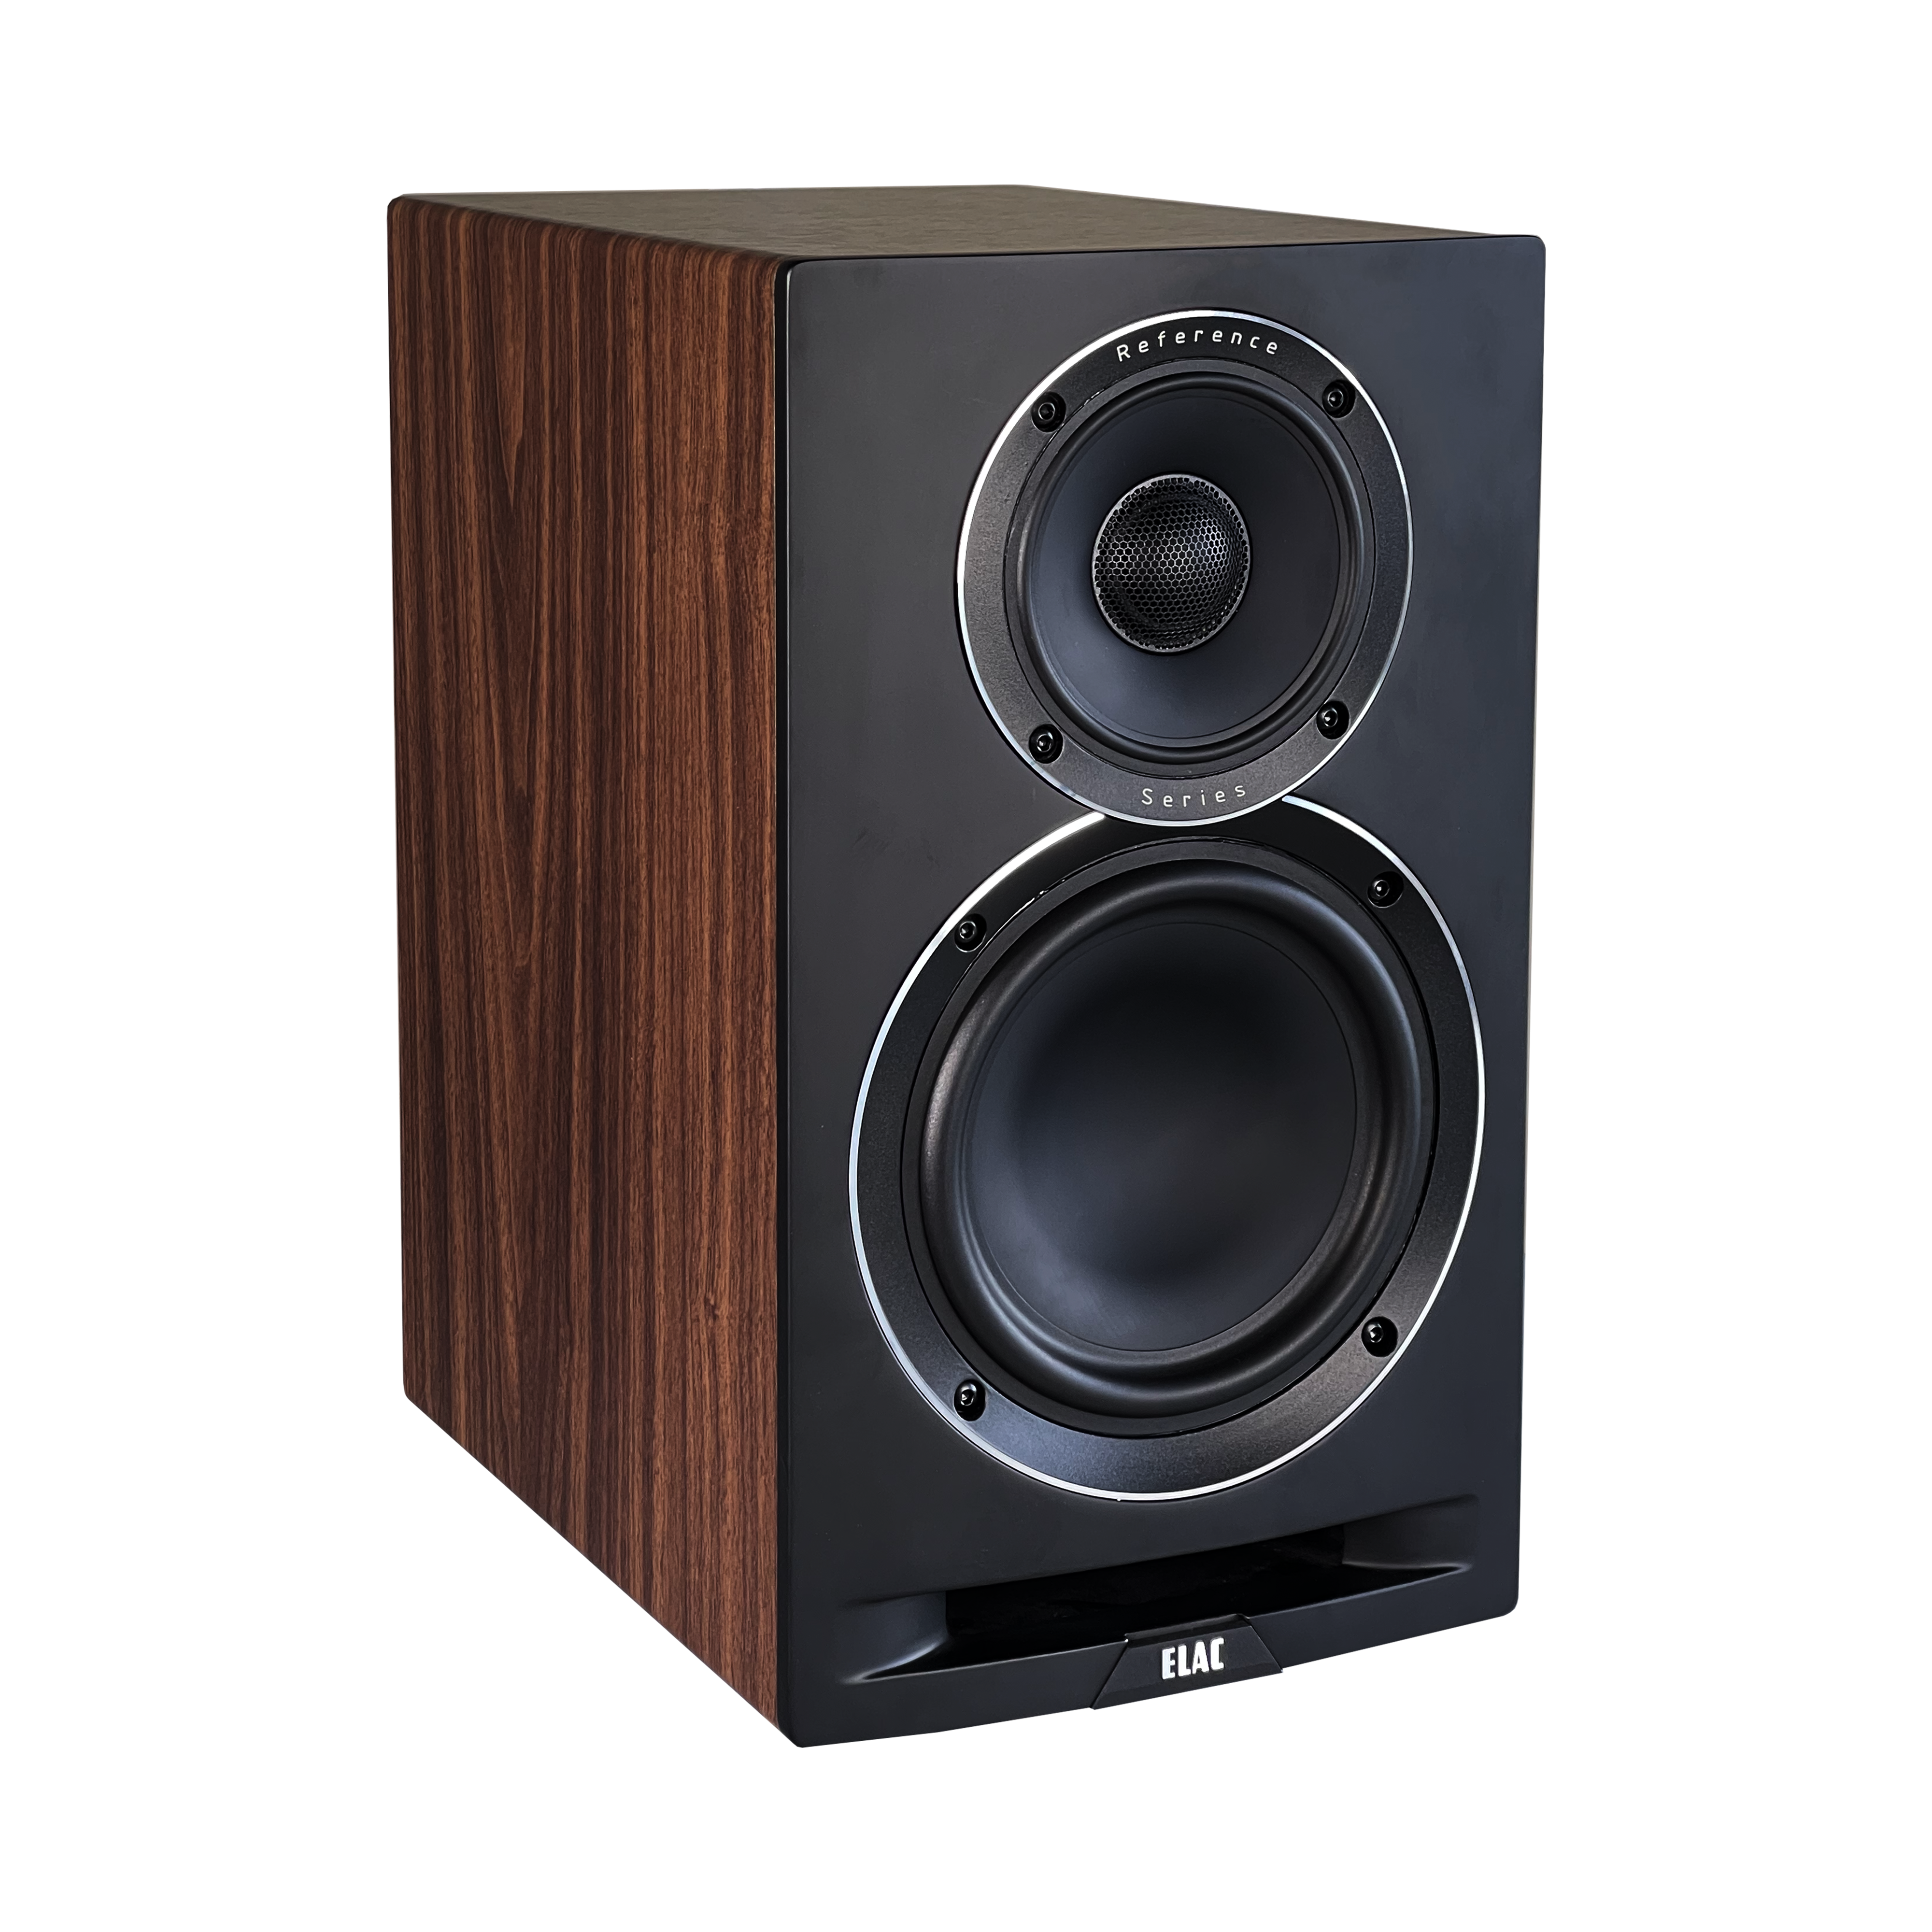 ELAC Announces the Uni-Fi Reference Line of Home Speakers